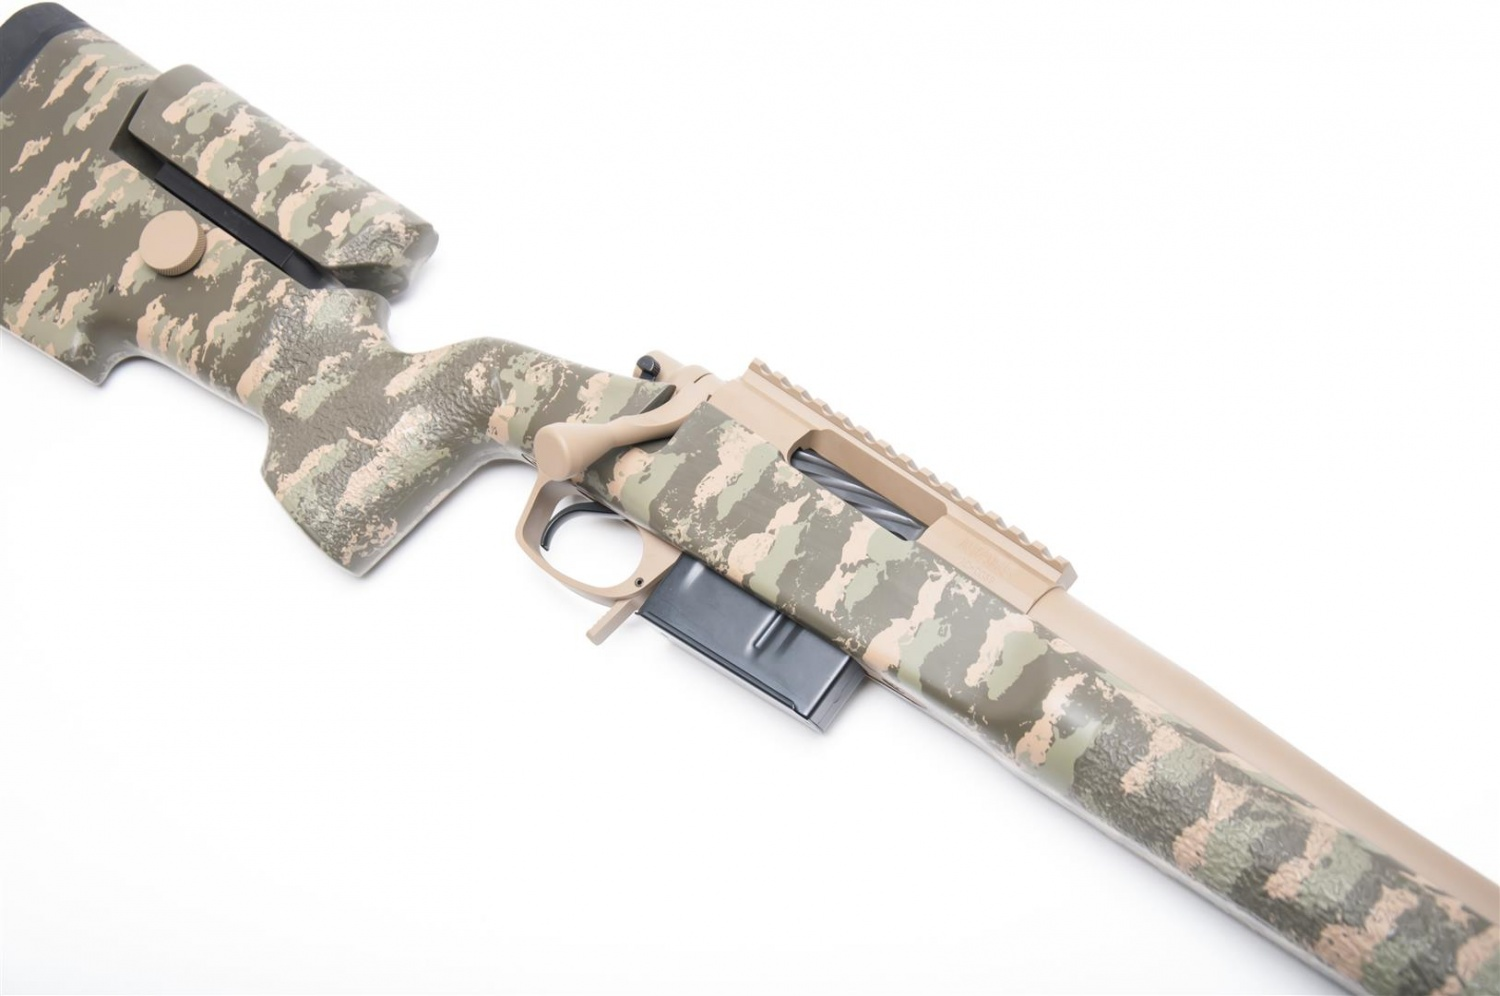 RUGGED SUPPRESSORS AND ACCURATE ORDNANCE ANNOUNCE PARTNERSHIP: